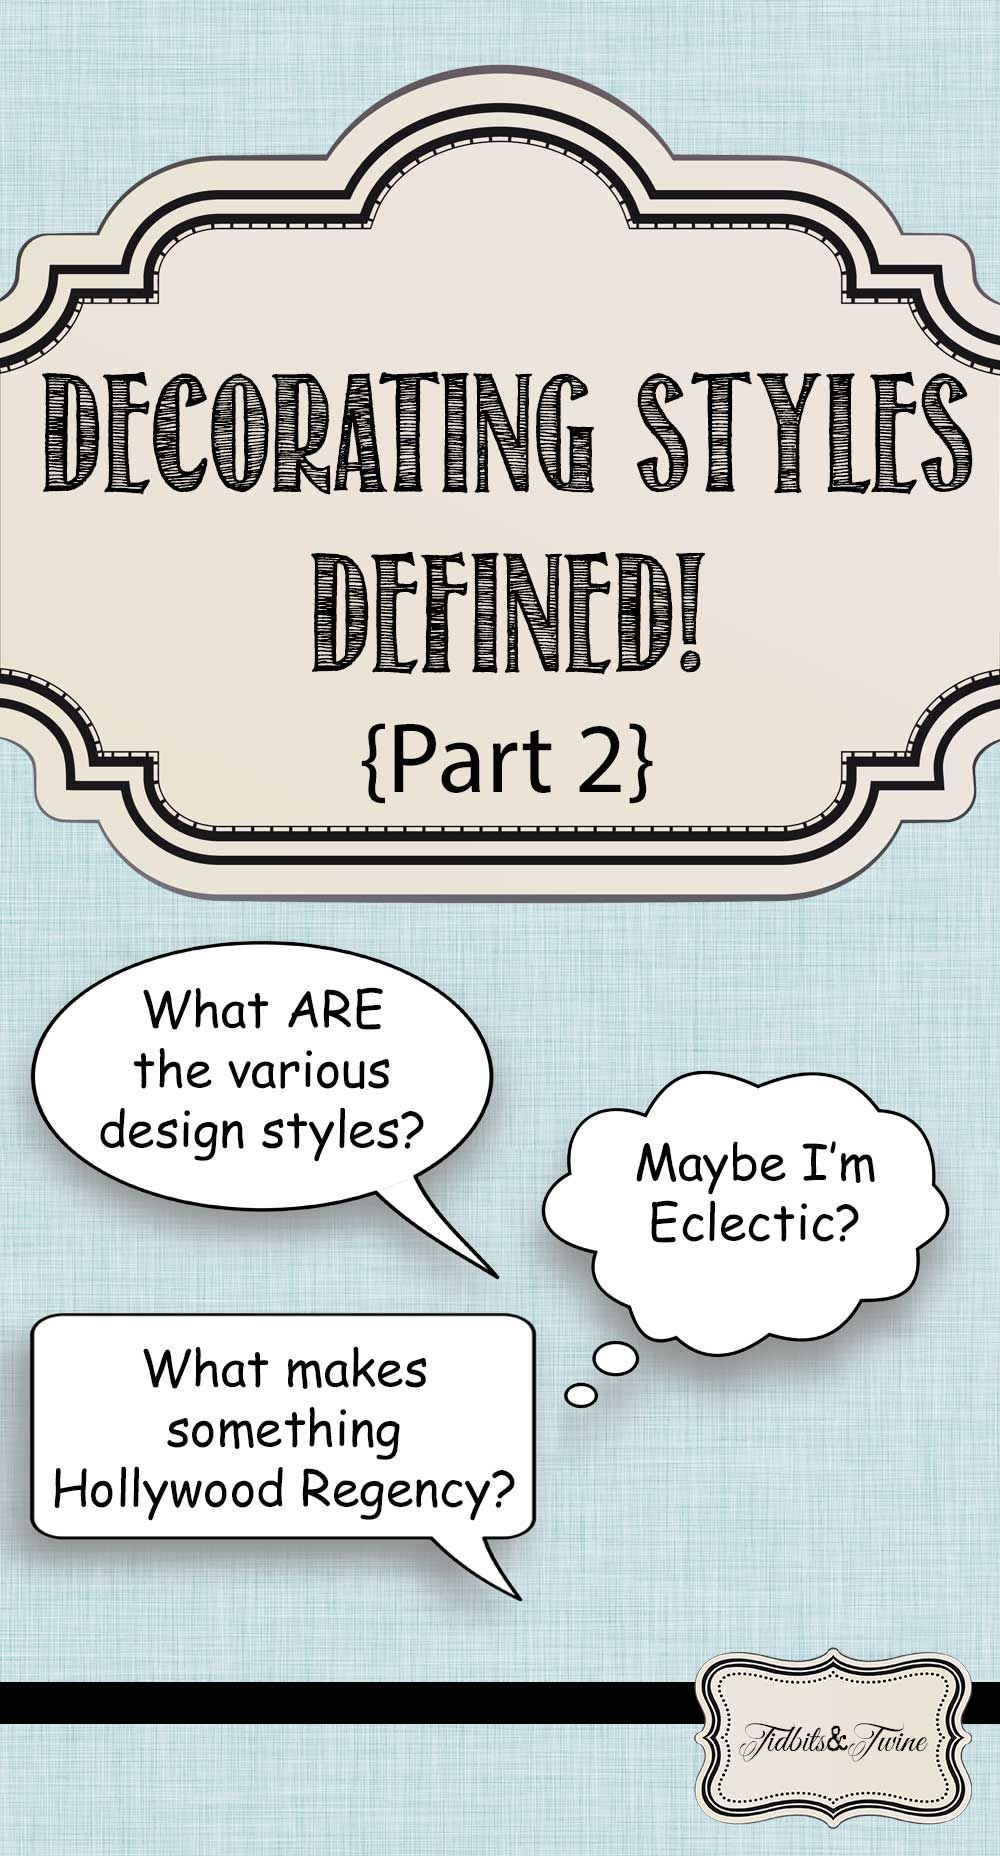 Decorating Styles Defined {Part 2}   TIDBITSu0026TWINE